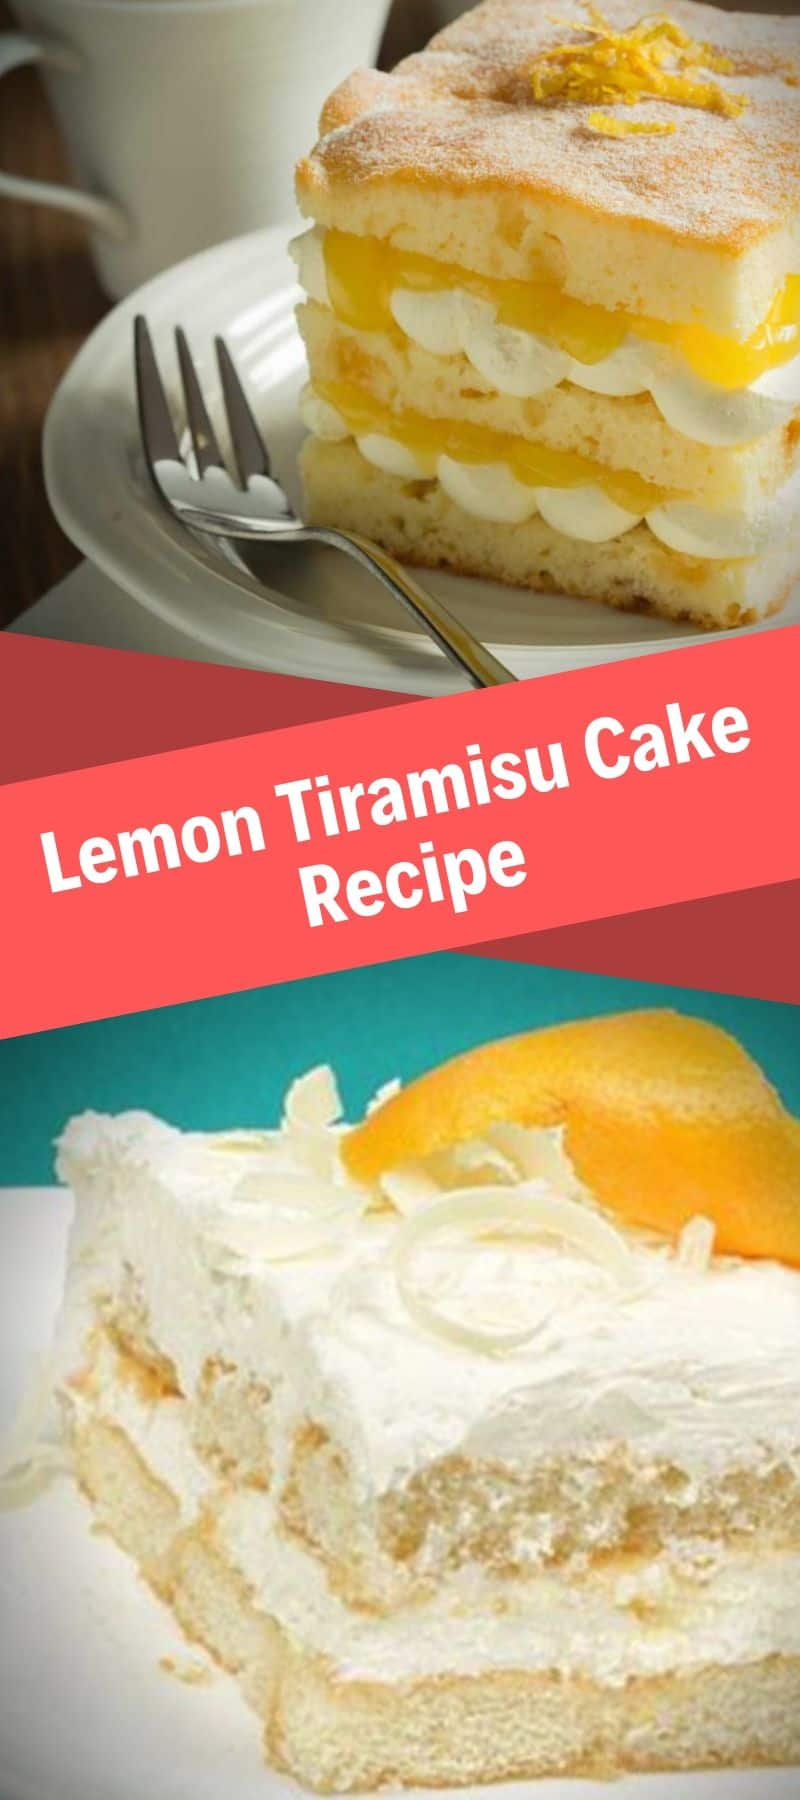 Lemon Tiramisu Cake Recipe 3